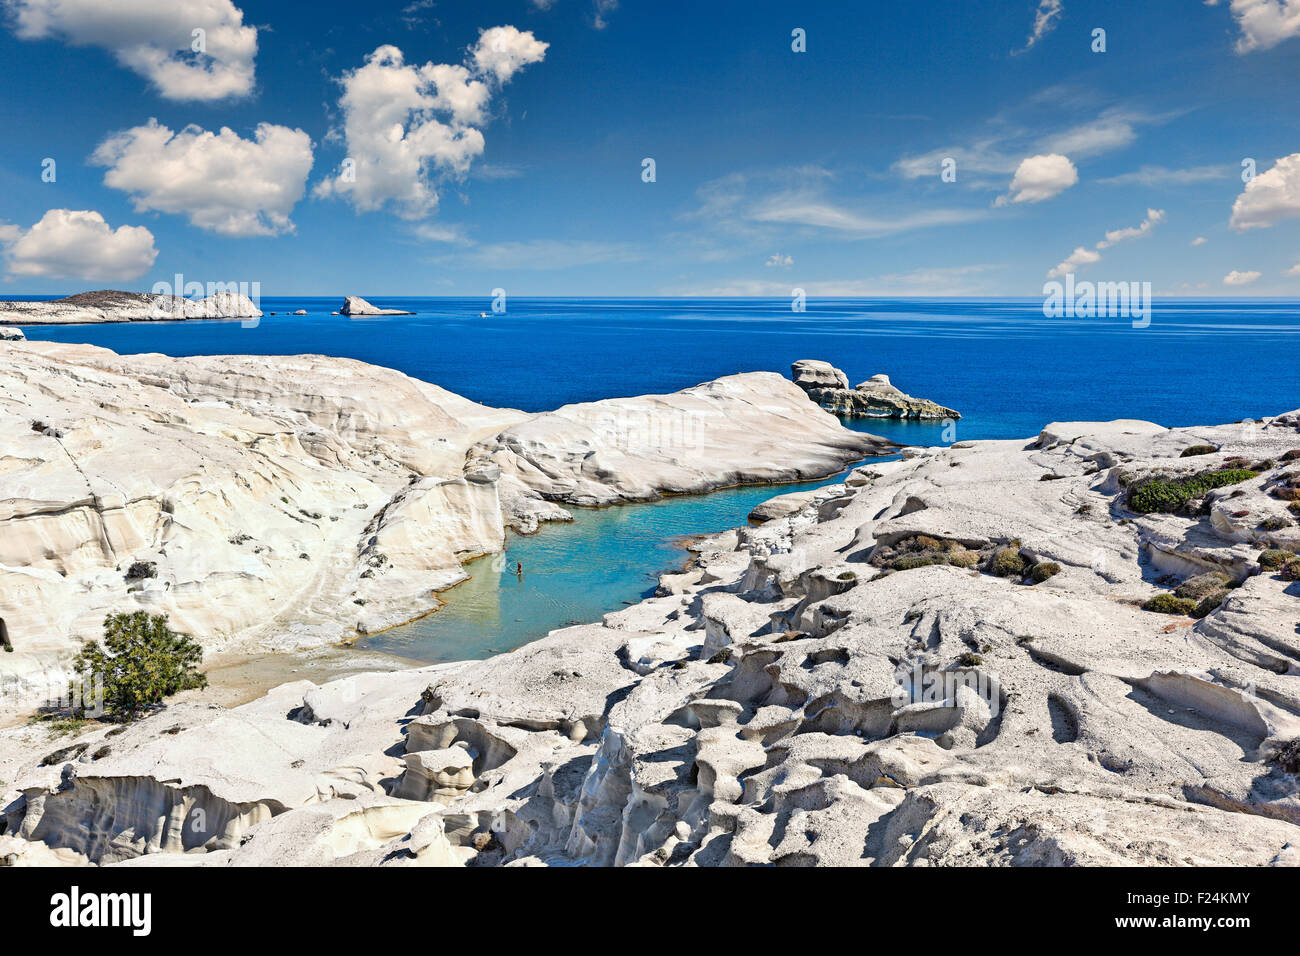 The famous Sarakiniko in Milos, Greece - Stock Image